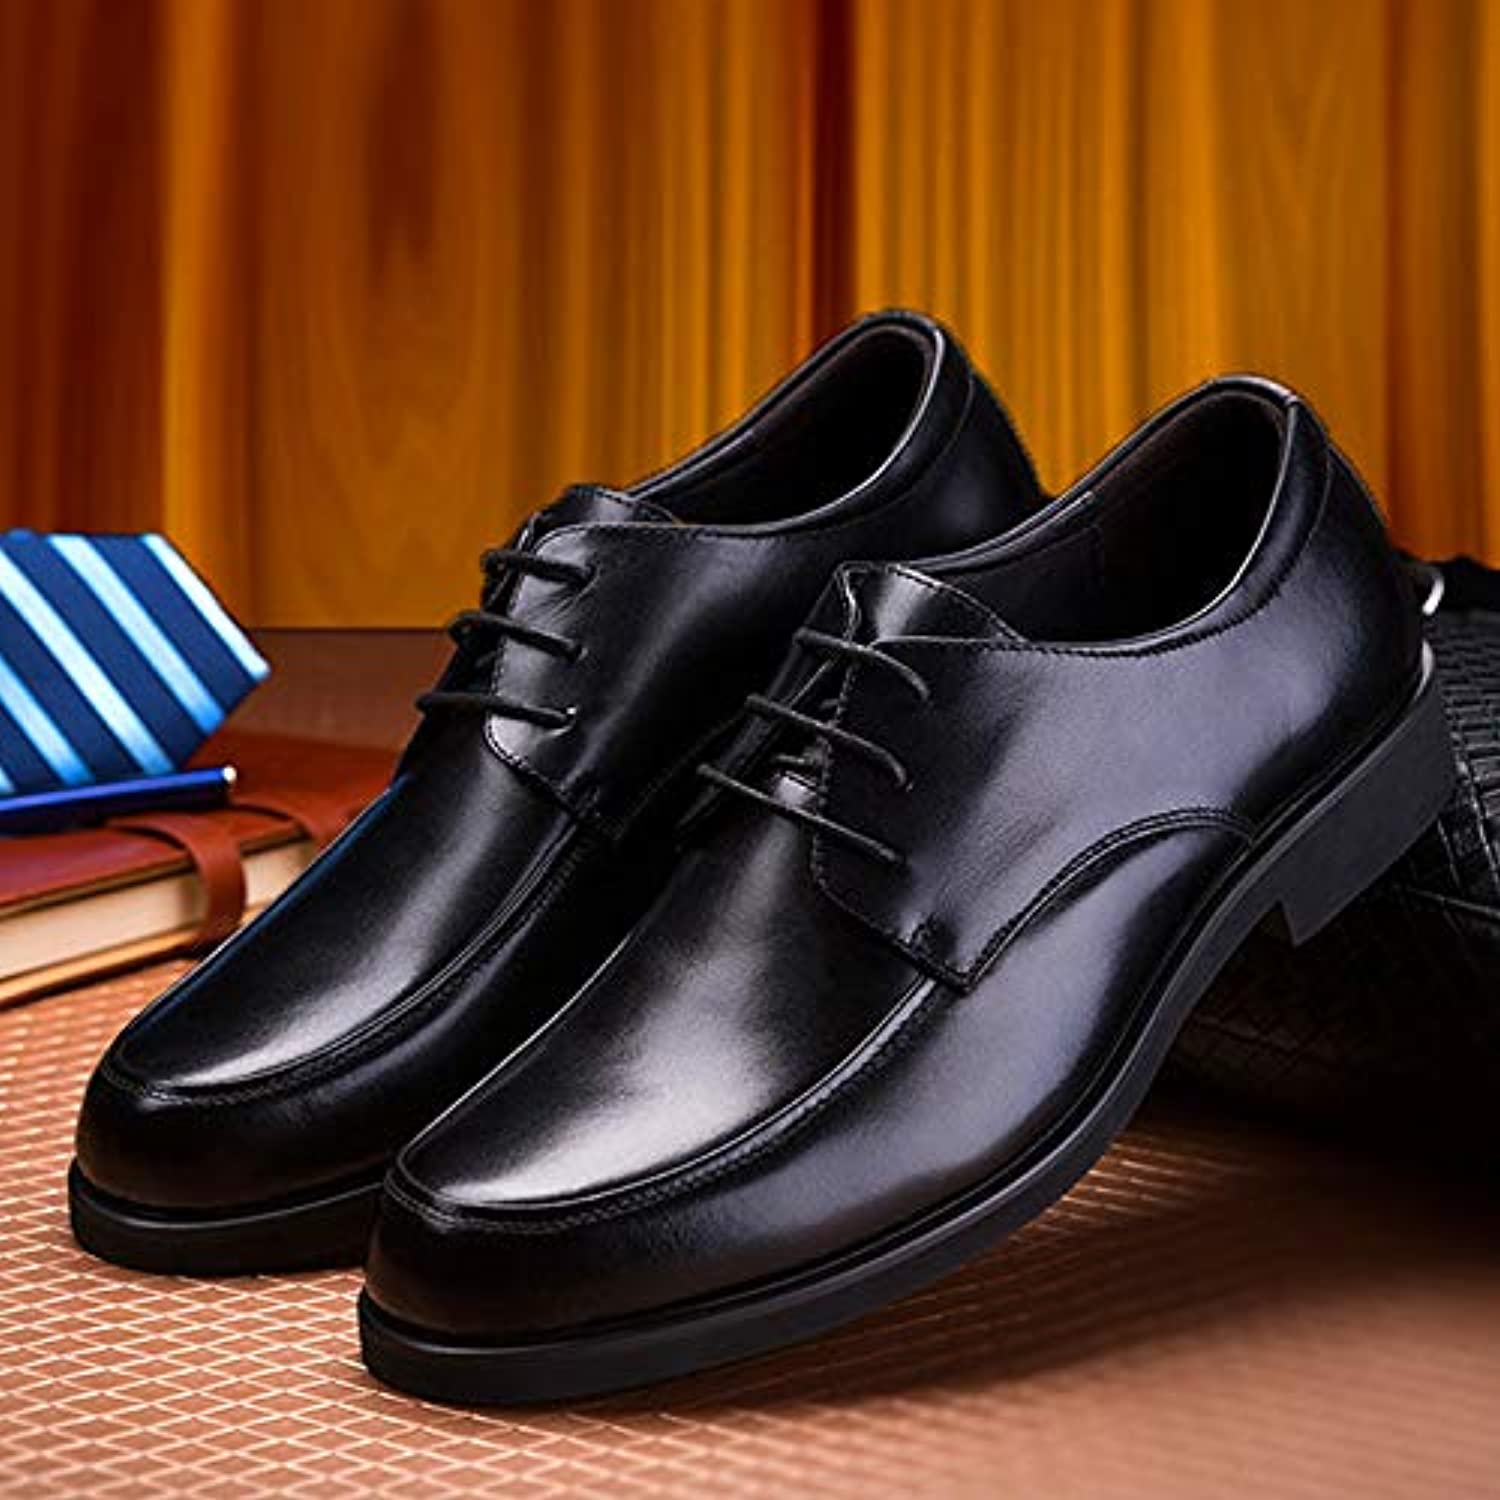 LOVDRAM Men'S Leather shoes Autumn Men'S Business Leather shoes With Casual Dress shoes shoes Work shoes Men